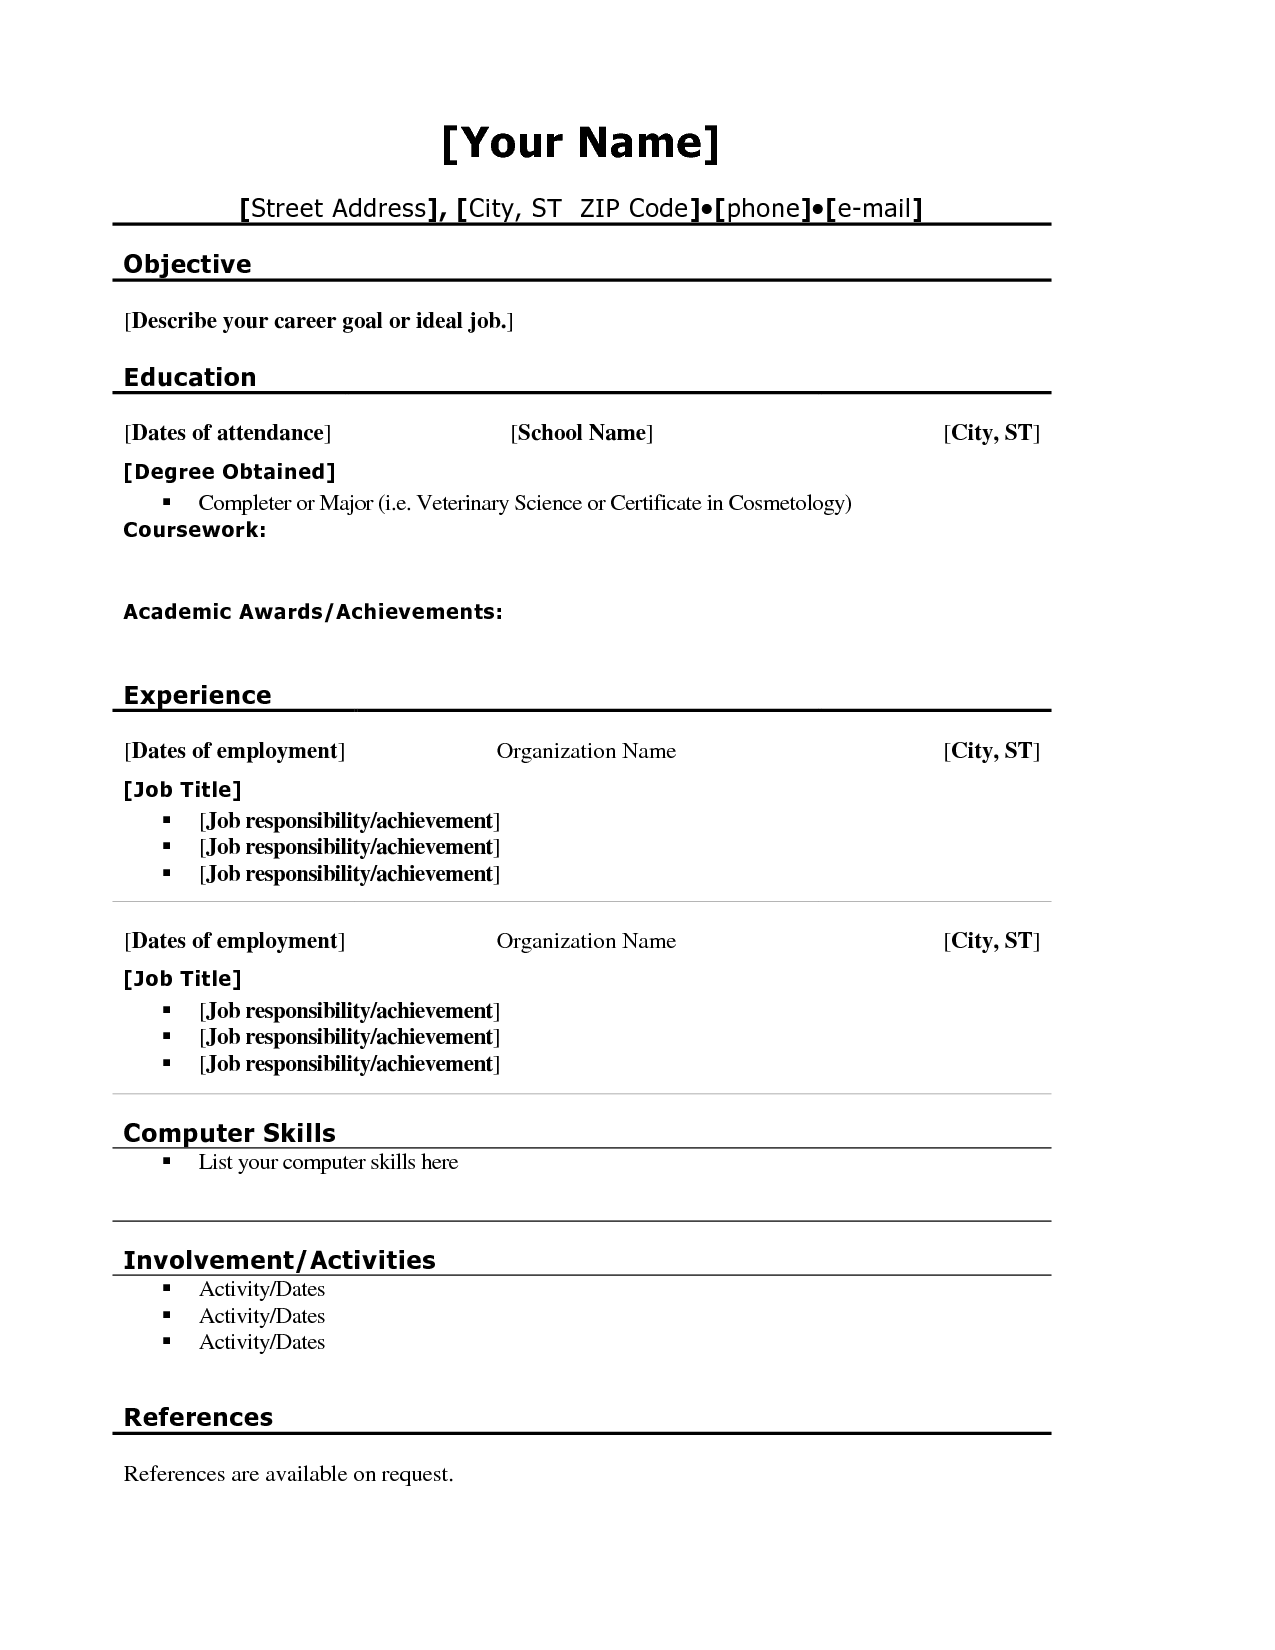 A Sample Resume For A First Job High School Student Resume Example Http Www